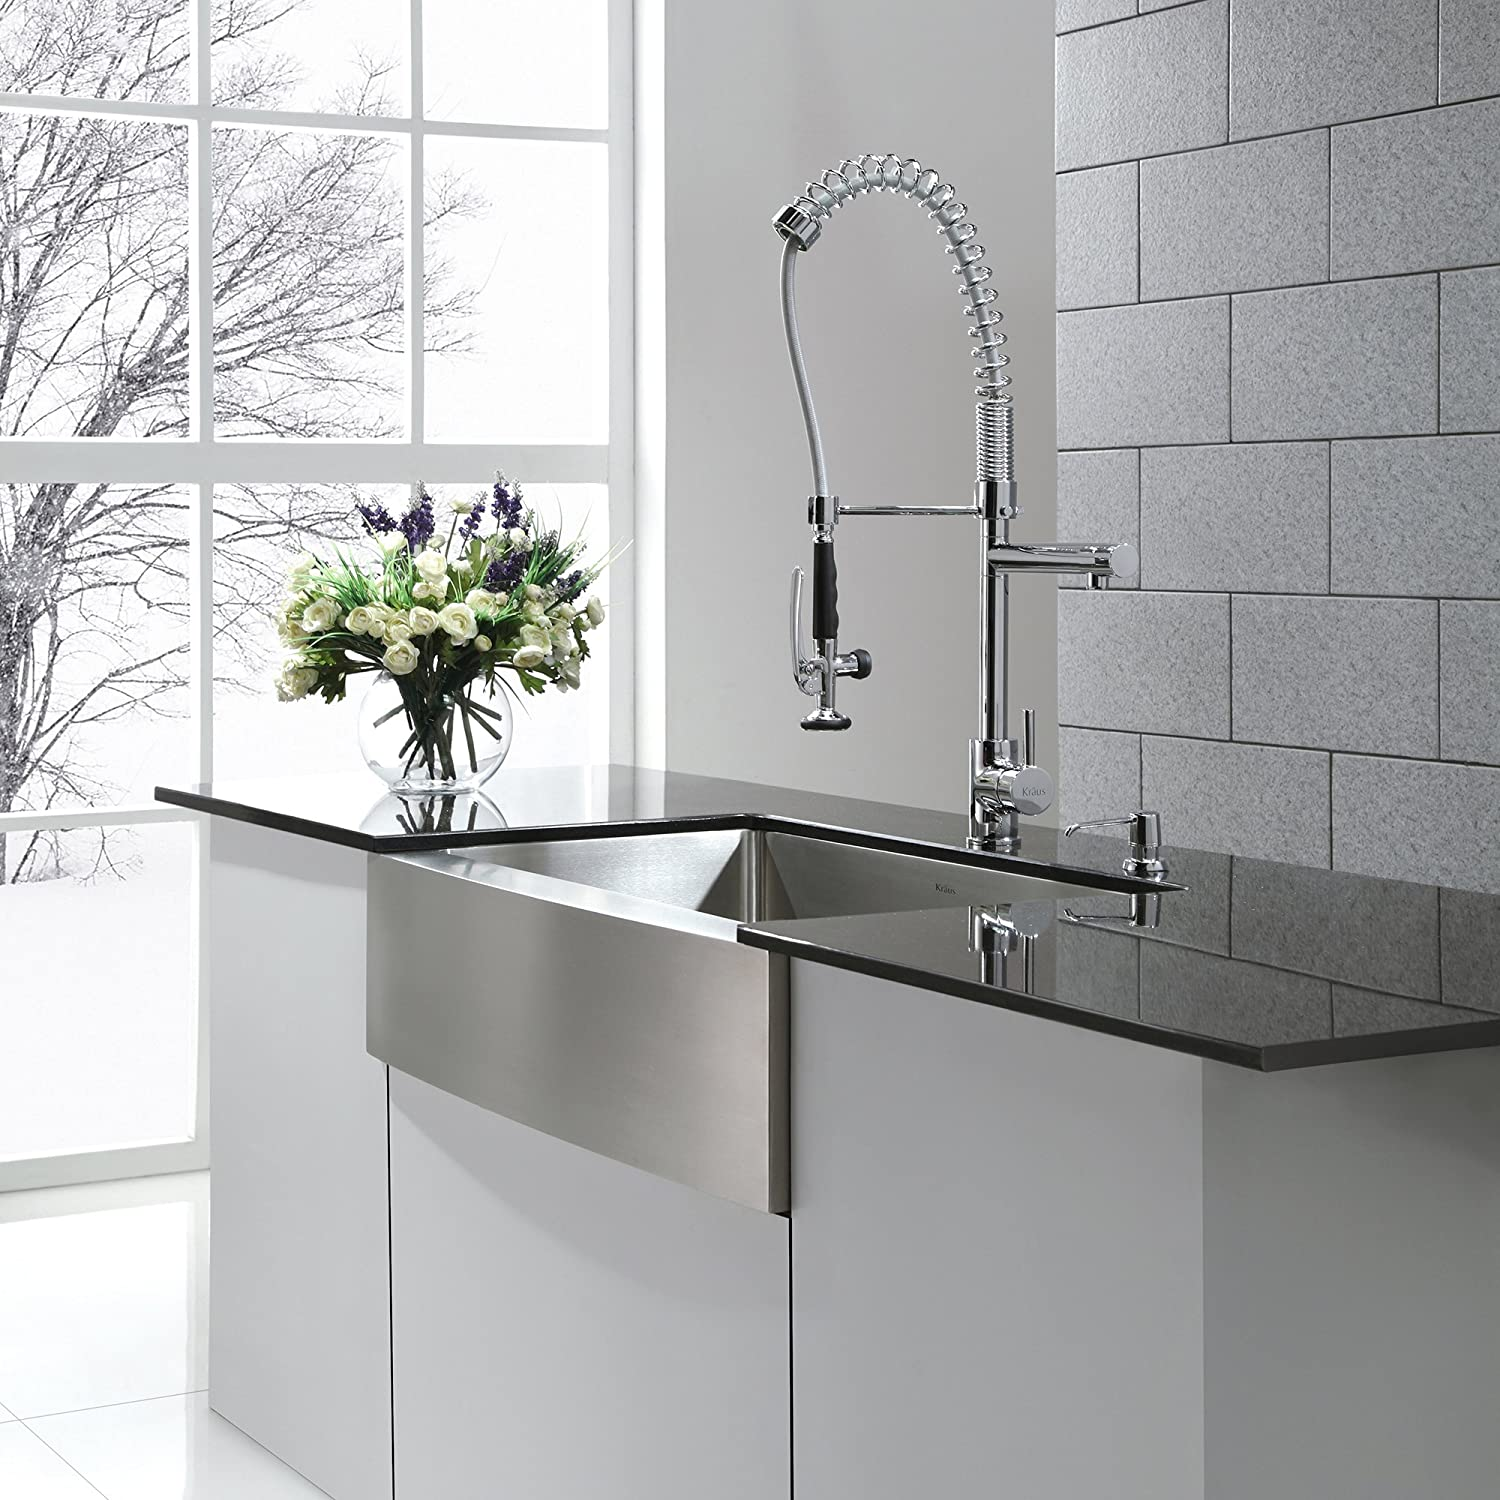 marvellous sink as stainless design art well home kitchen sinks steel